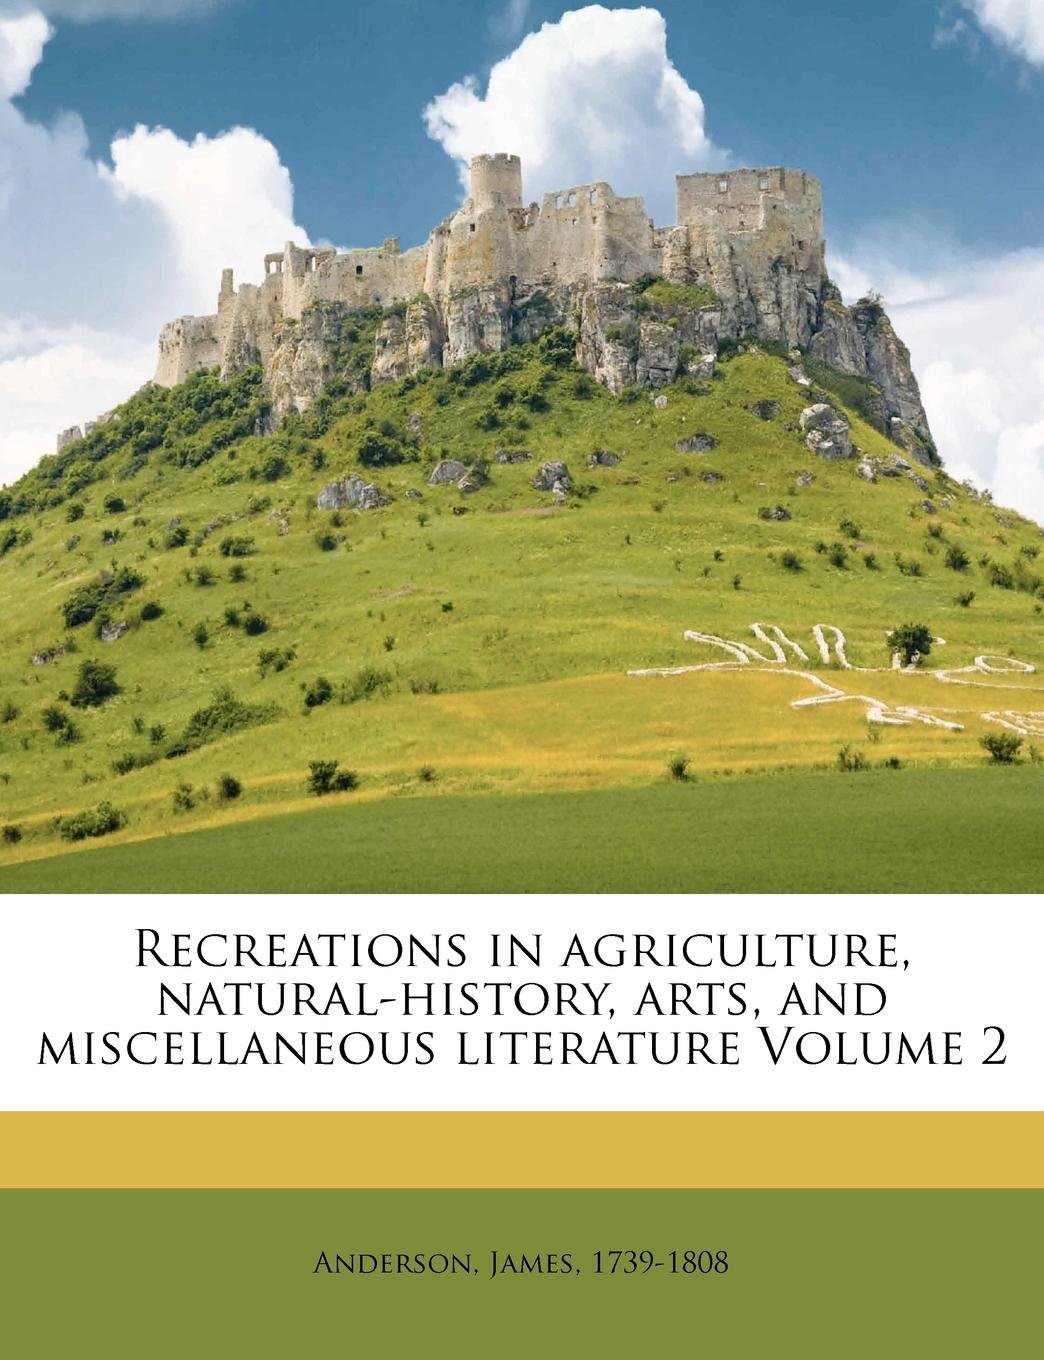 Recreations in agriculture, natural-history, arts, and miscellaneous literature Volume 2 pdf